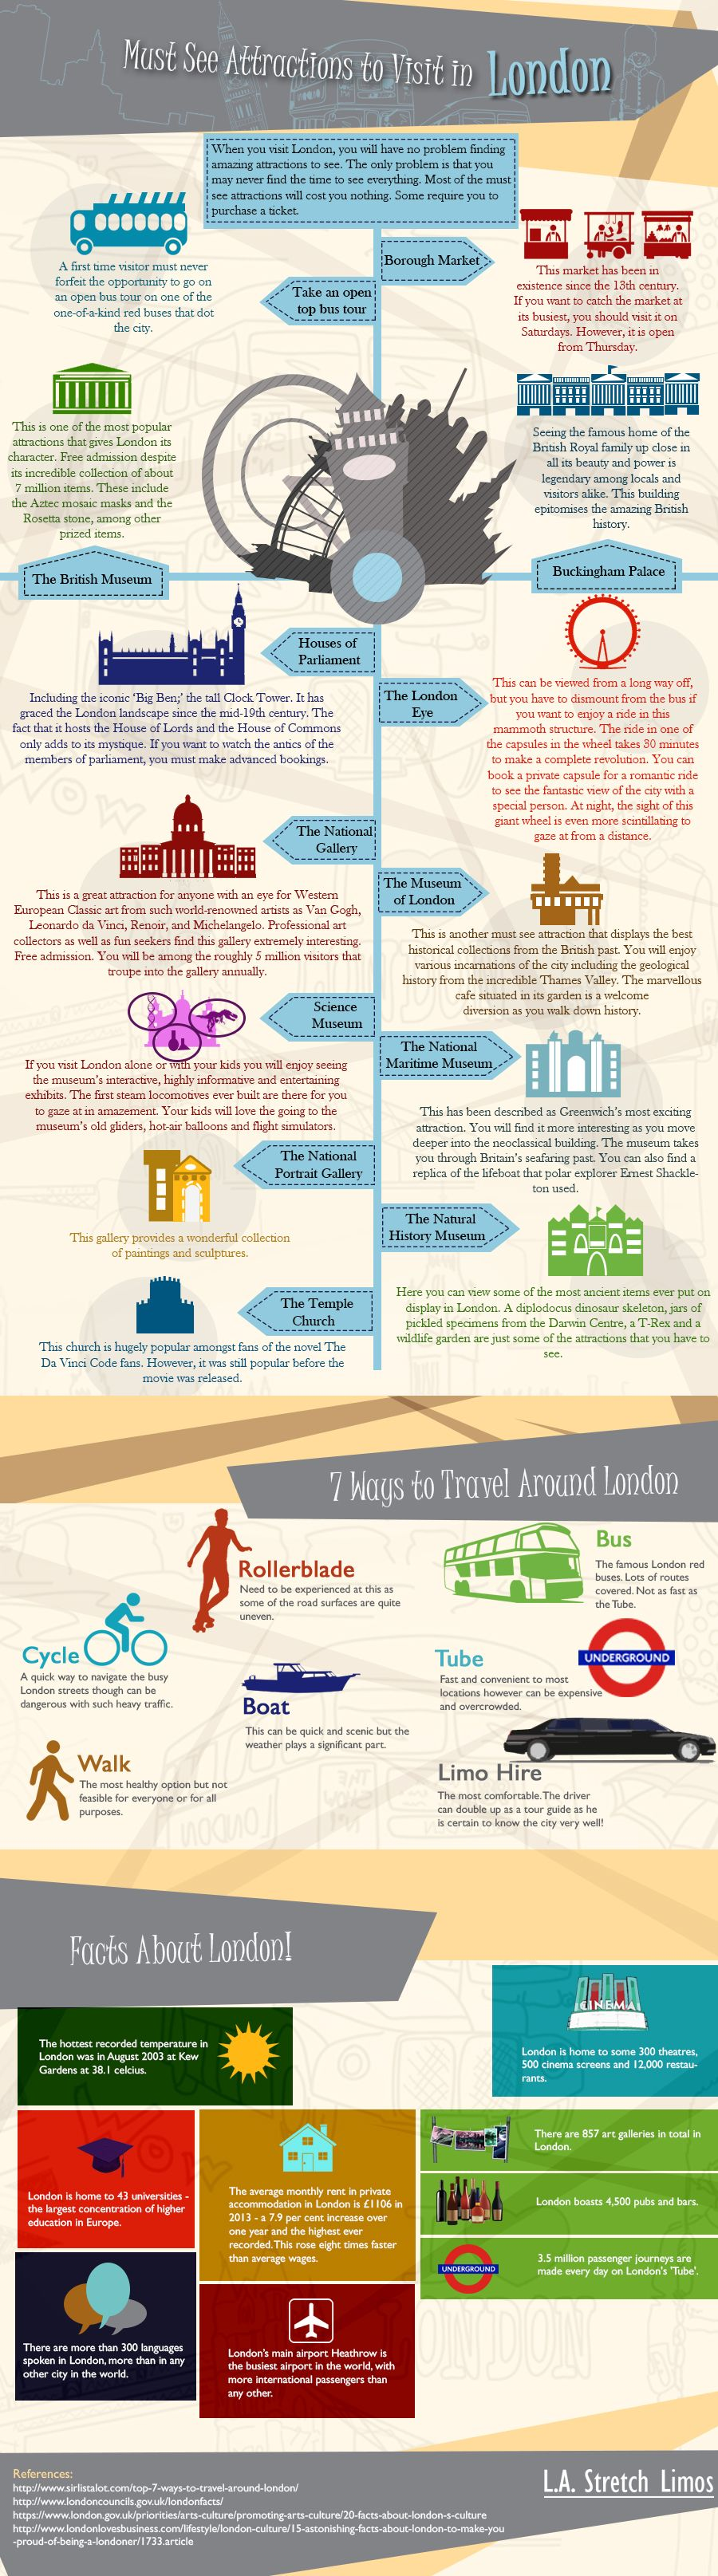 Must See Attractions to Visit in London